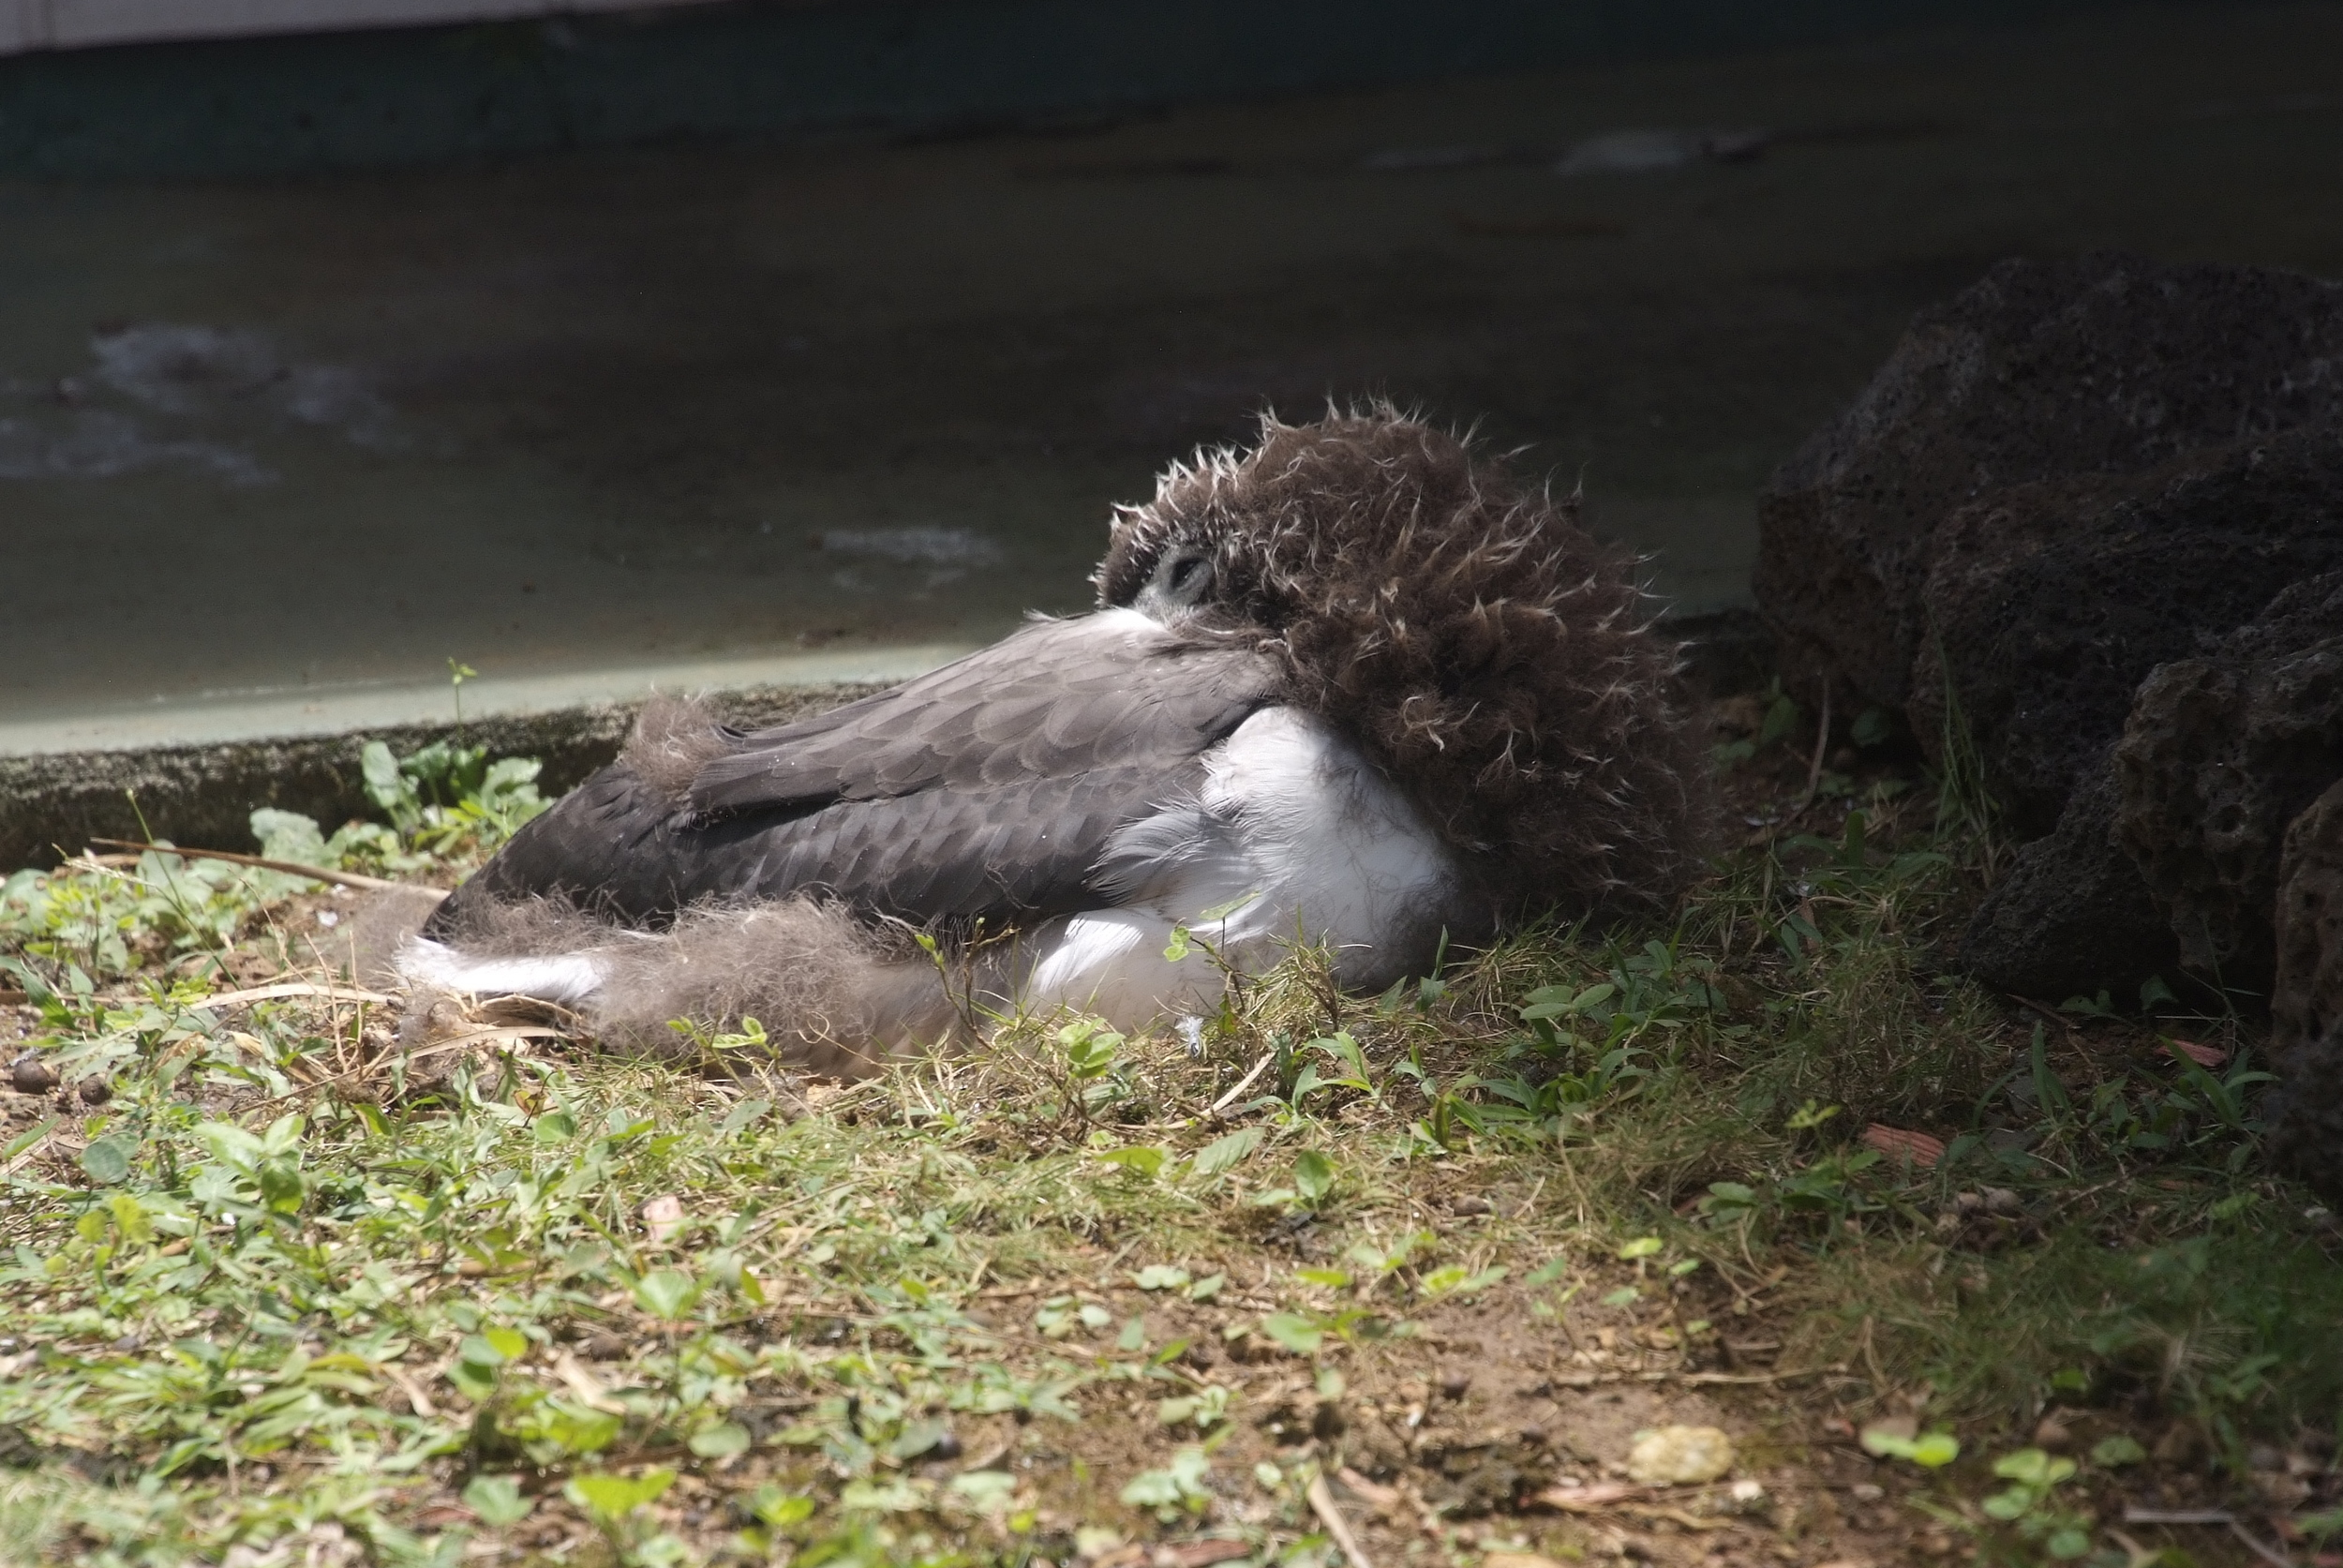 6. This chick is unnamed since the property is owned by off-island people. Refusing to wake up for a photo-op, he/she is demonstrating the position the albatross use for sleeping on the open ocean. They twist their heads back to nestle on their backs as they float.